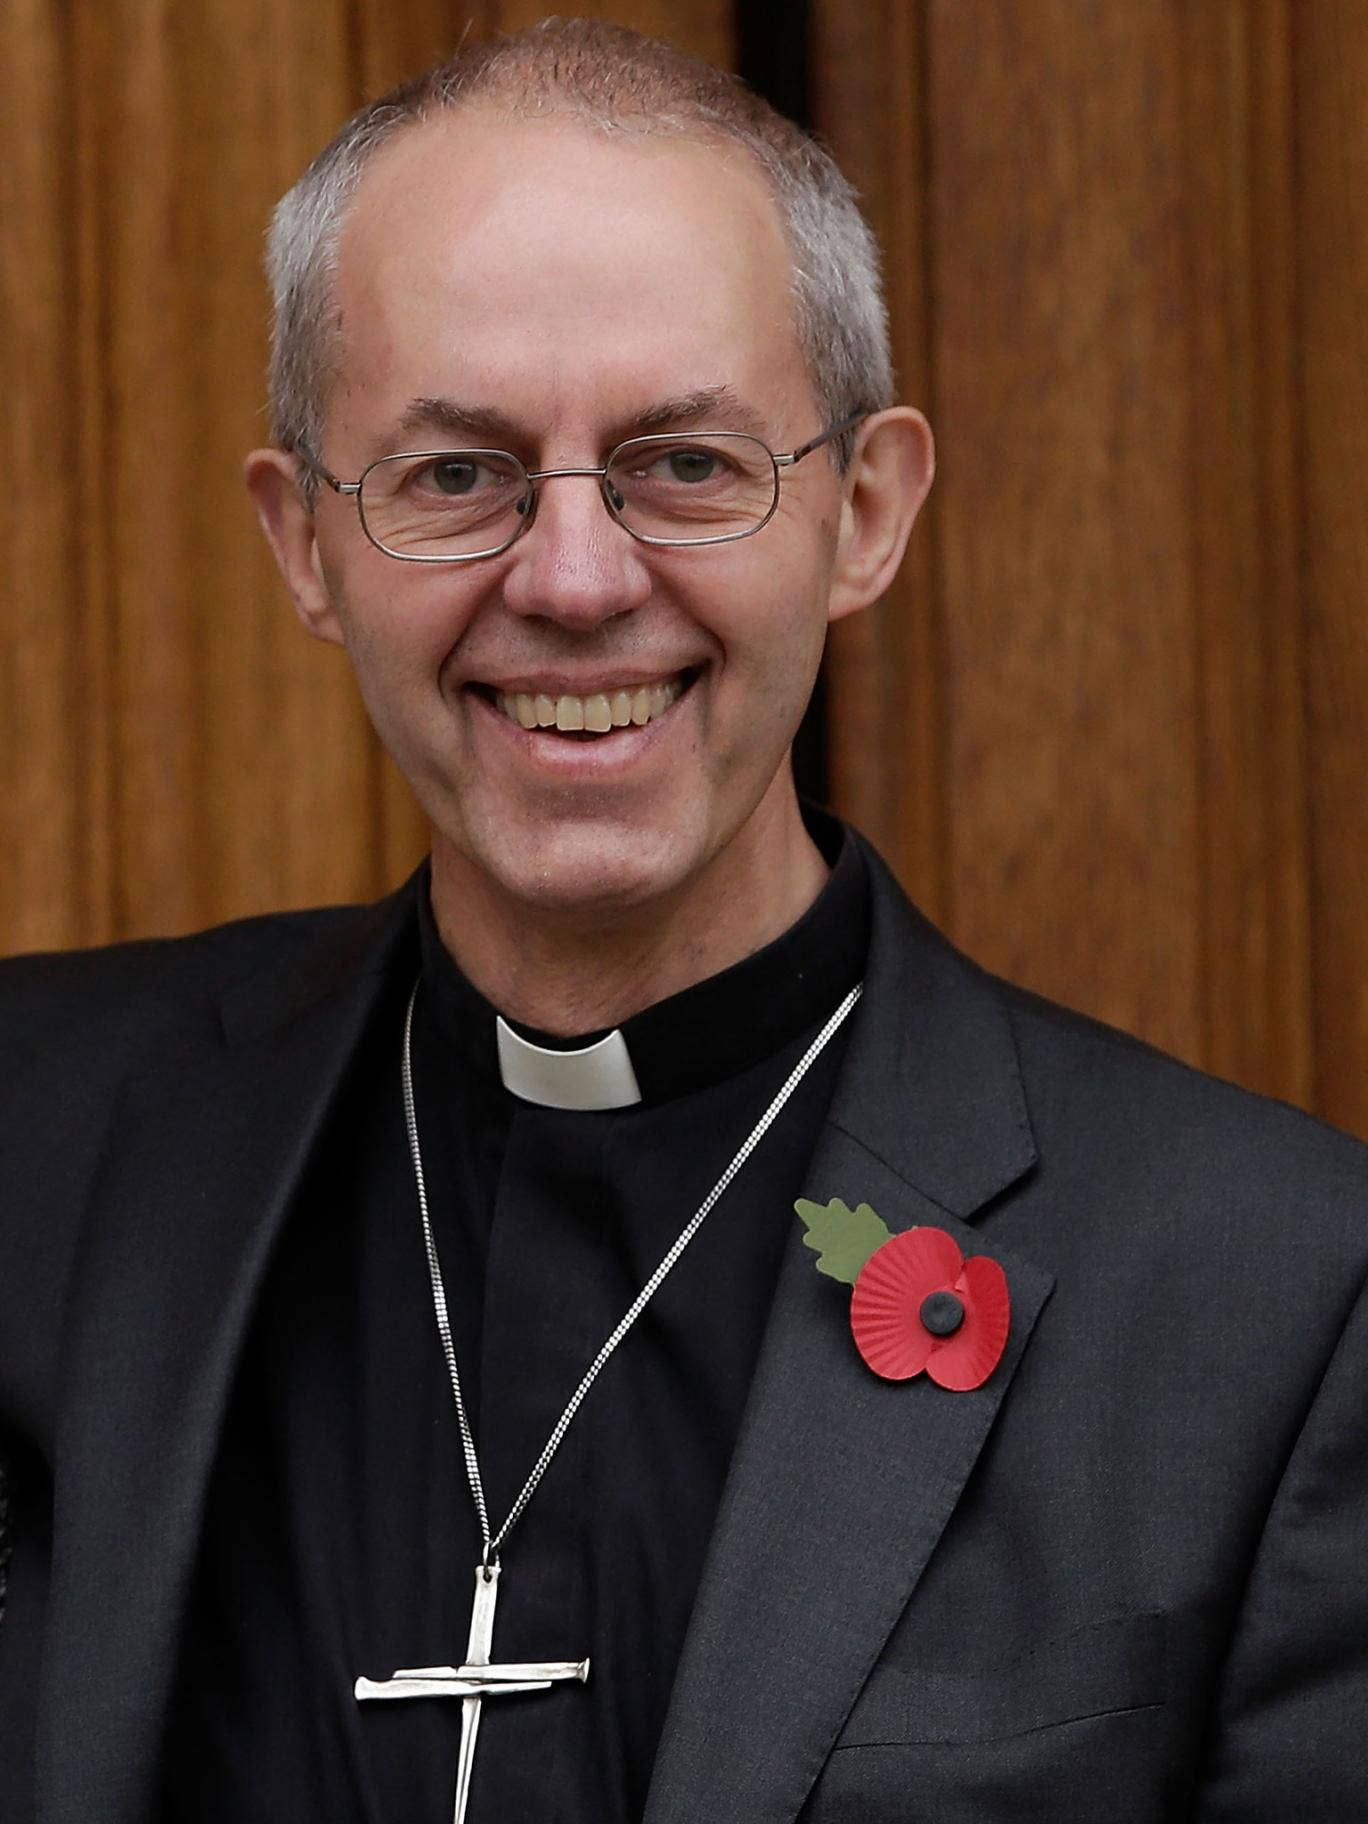 Justin Welby, the Archbishop of Canterbury, has warned that expensive Christmas presents could damage relationships if they leave people short of money